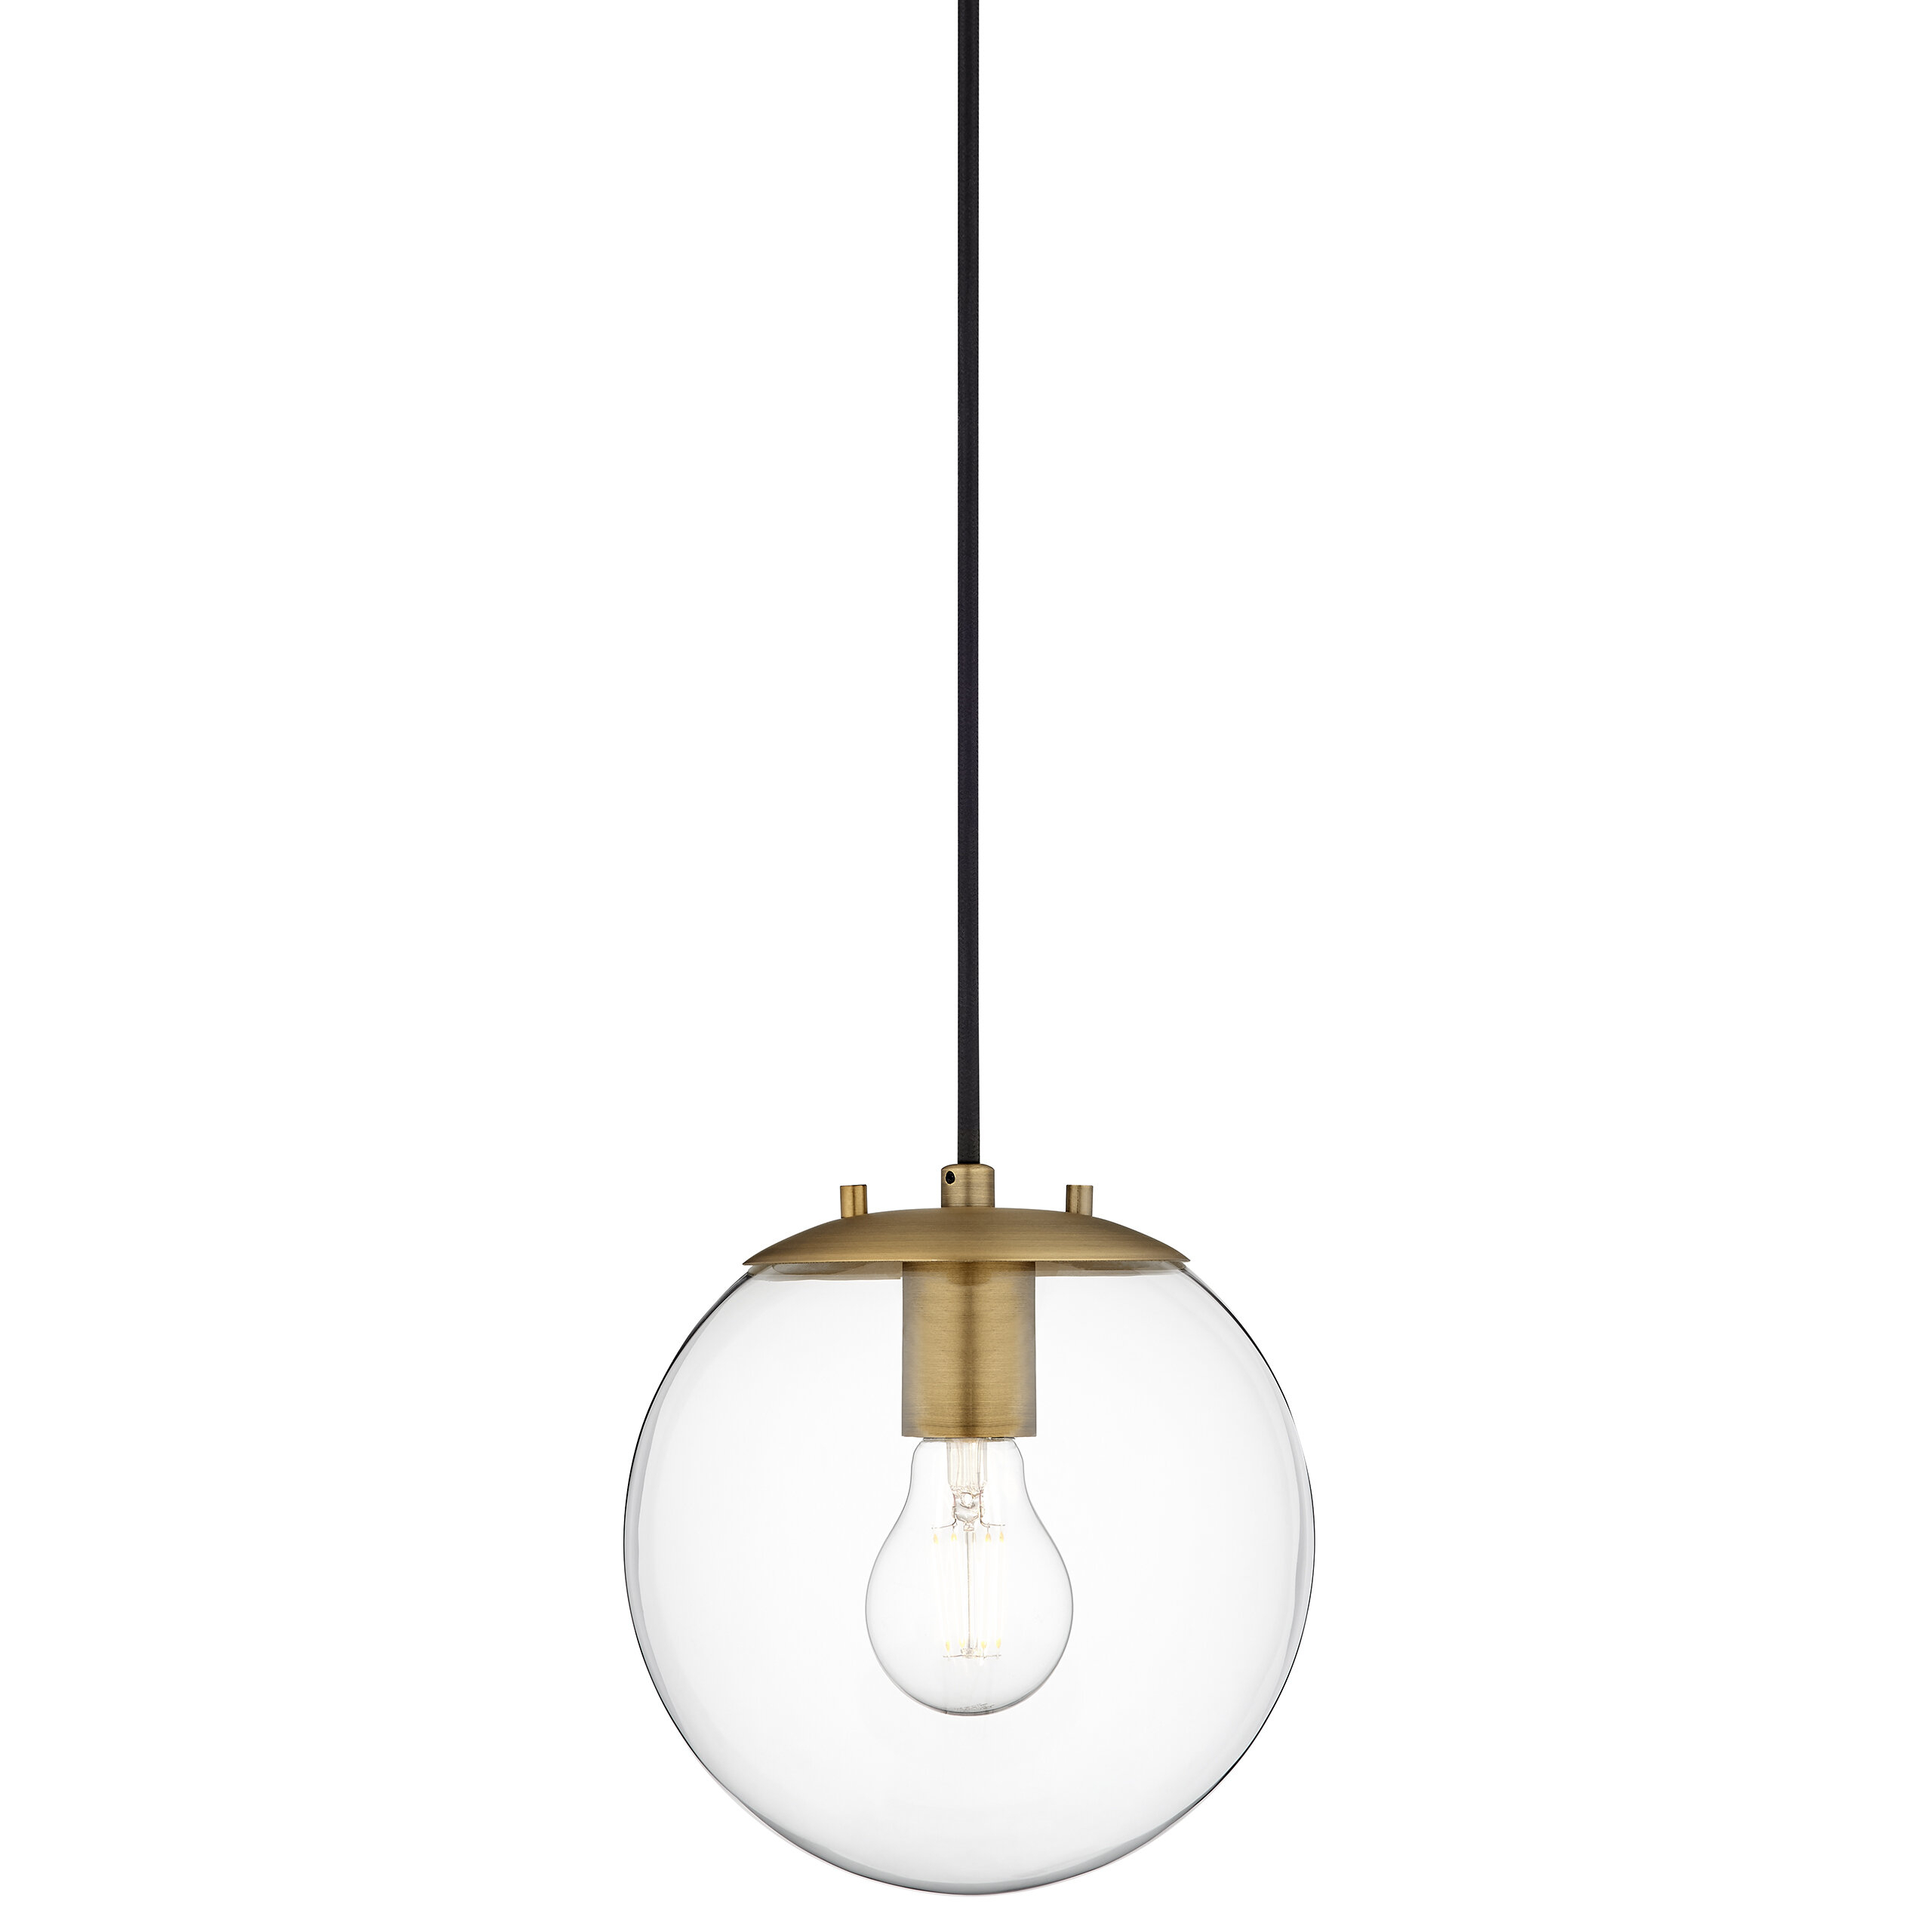 Wysocki 1 Light Single Globe Pendant Regarding Cayden 1 Light Single Globe Pendants (View 30 of 30)